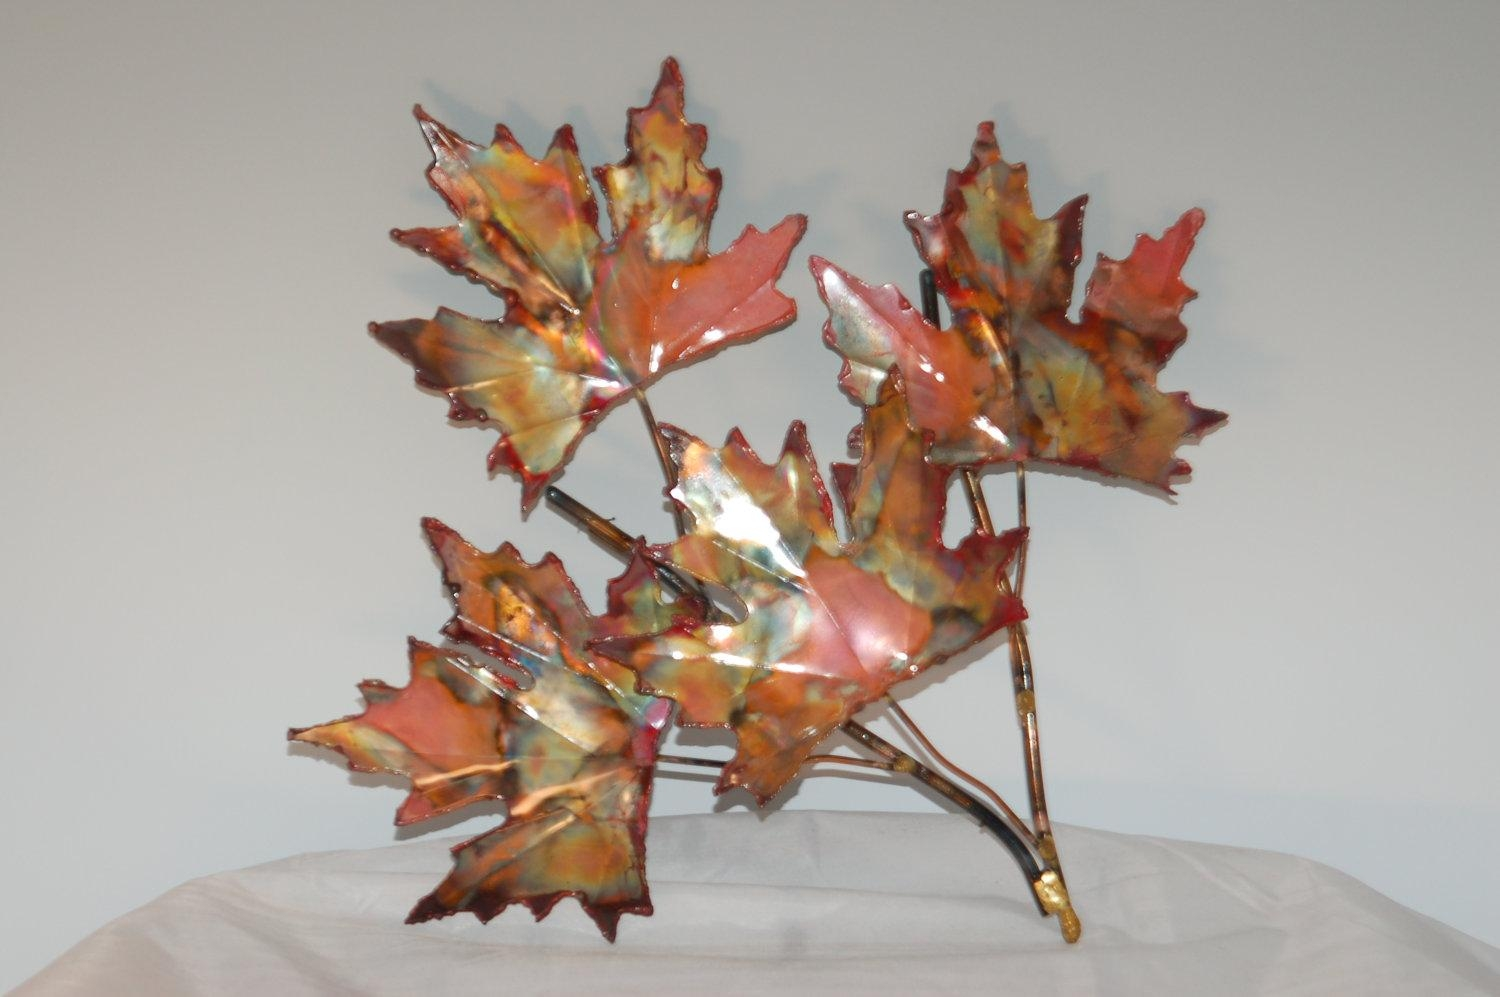 Copper Wall Art In Sculptures, Trees, Accents And Photo Paintings Throughout Copper Wall Art Home Decor (Image 3 of 20)